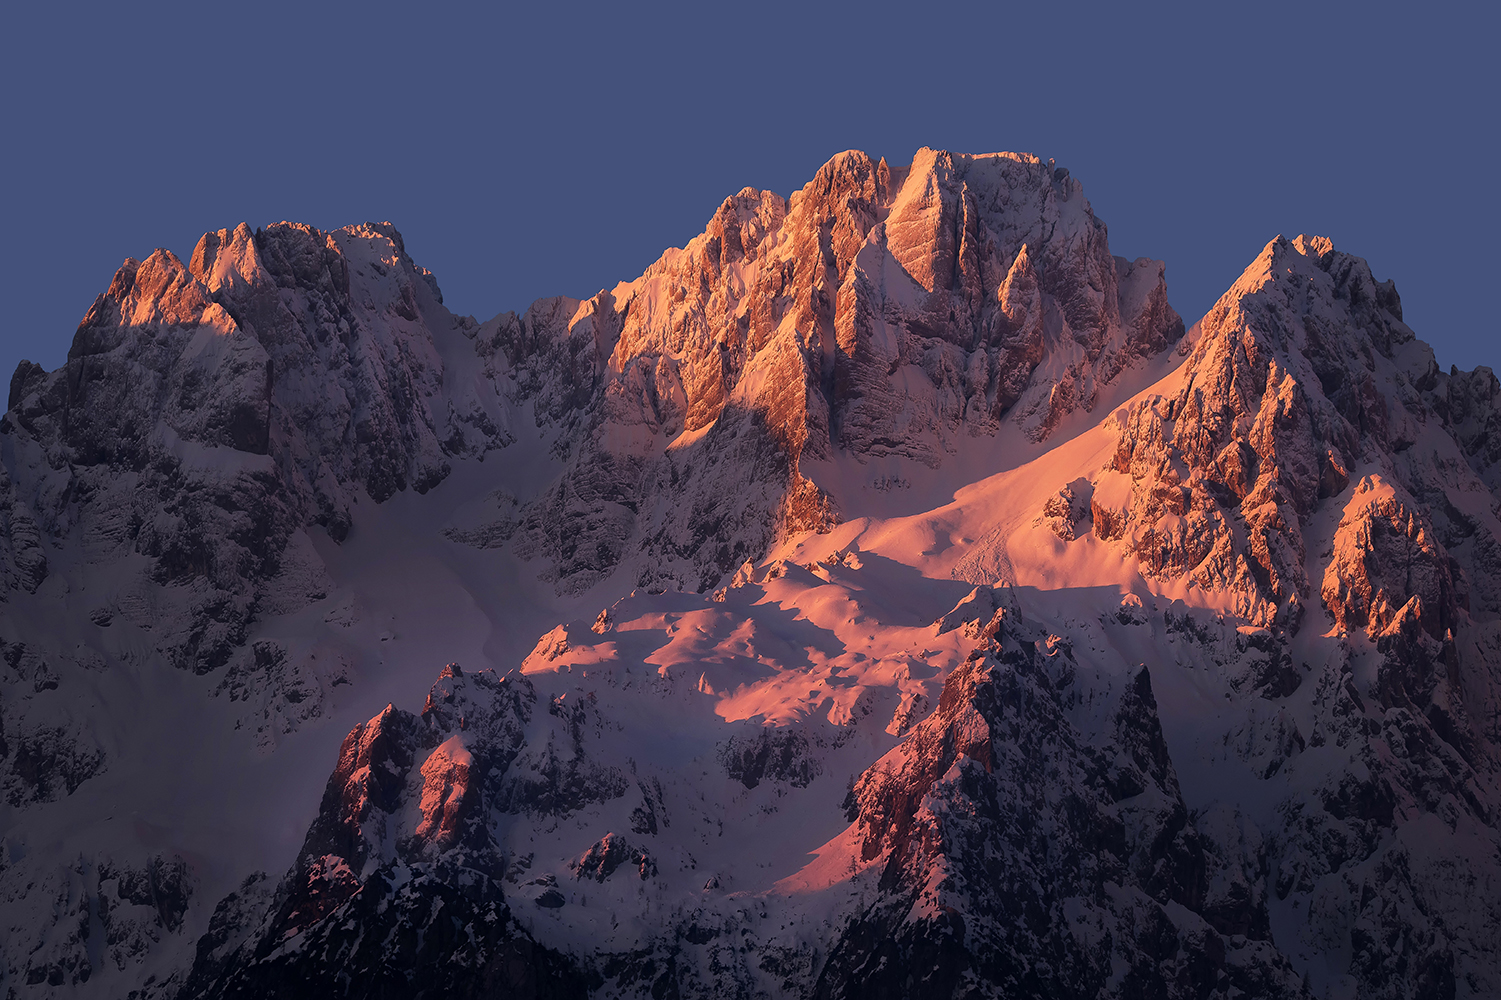 Majestic mountain peaks in the morning example image 1